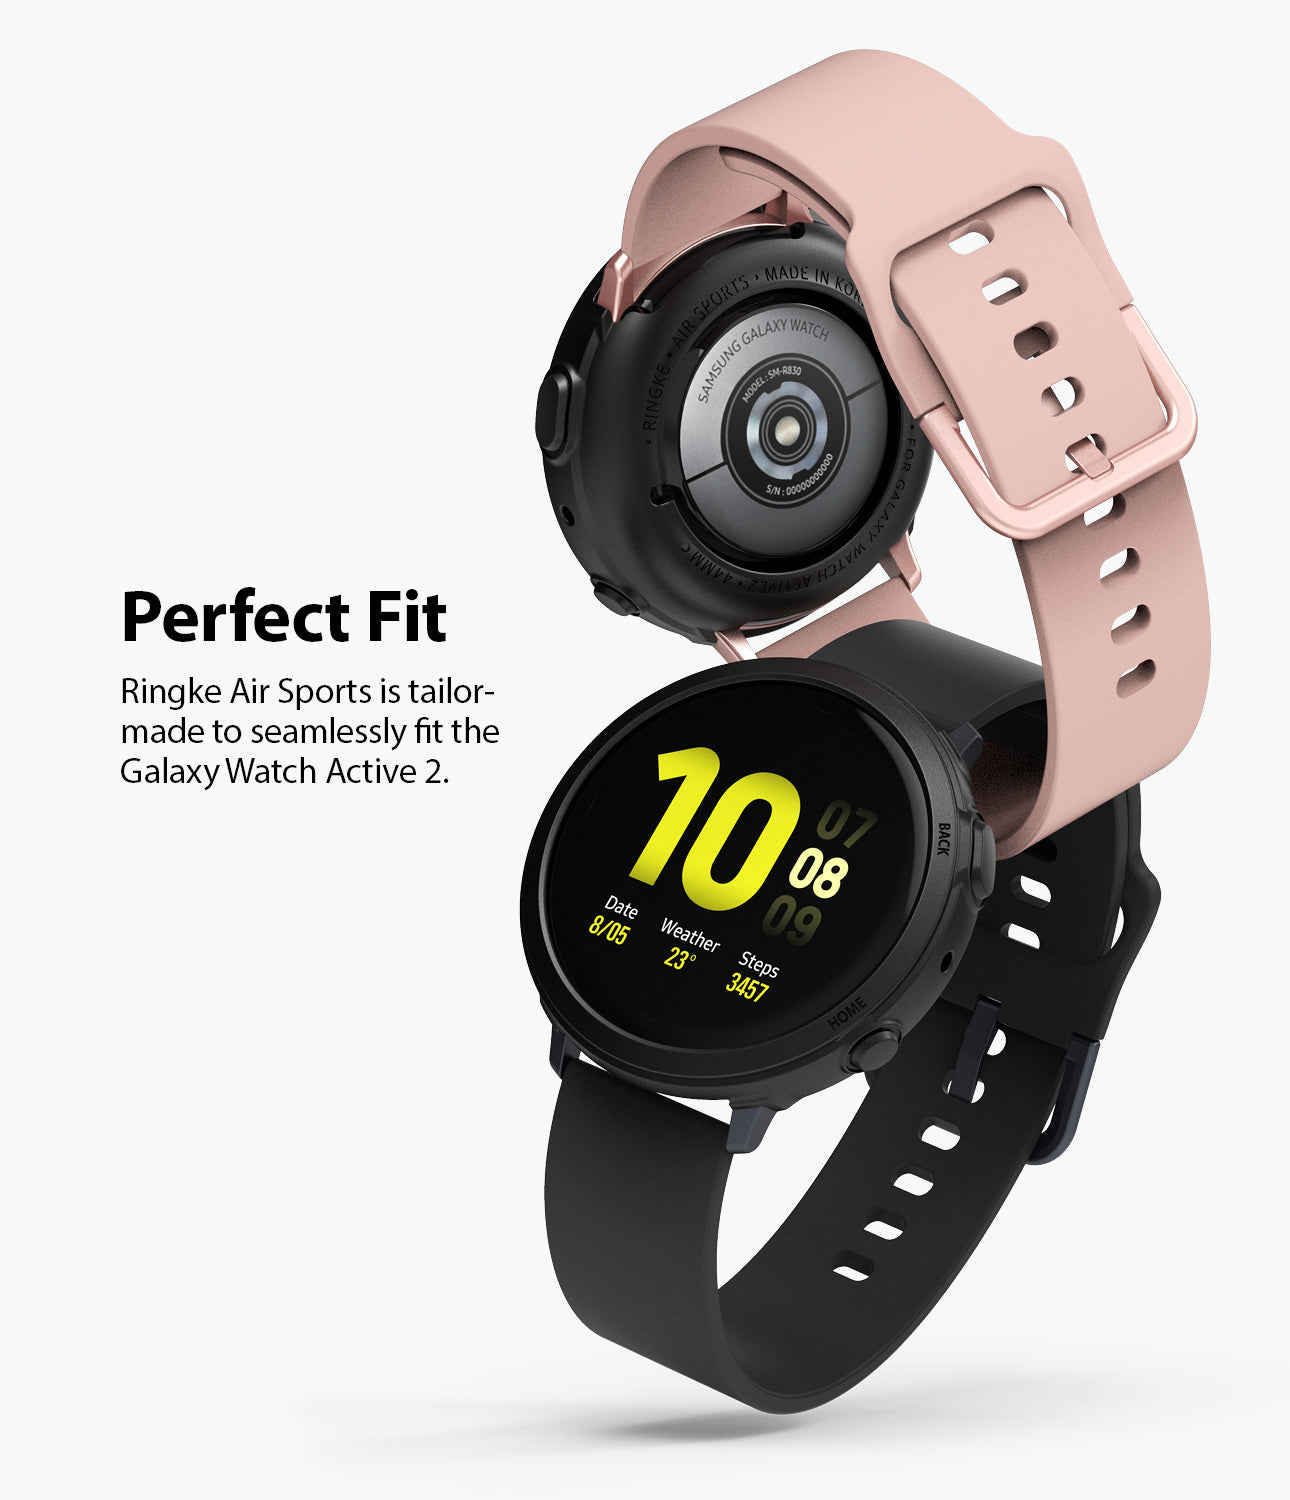 ringke air sport is tailor-made to seamlessly fit the galaxy watch active 2 44mm